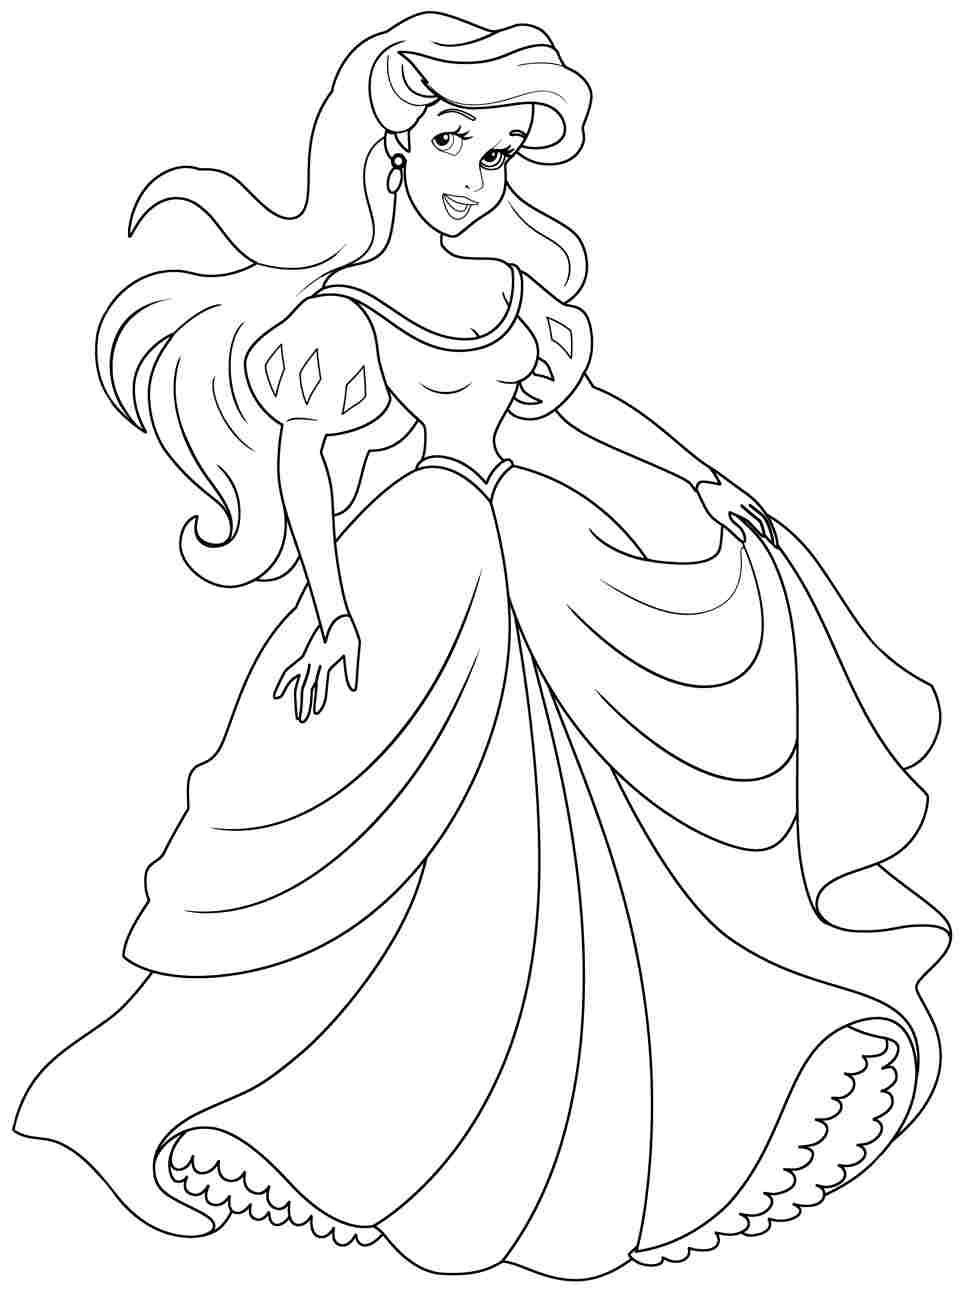 Young Princess Coloring Pages Google Search Disney Princess Coloring Pages Rapunzel Coloring Pages Ariel Coloring Pages